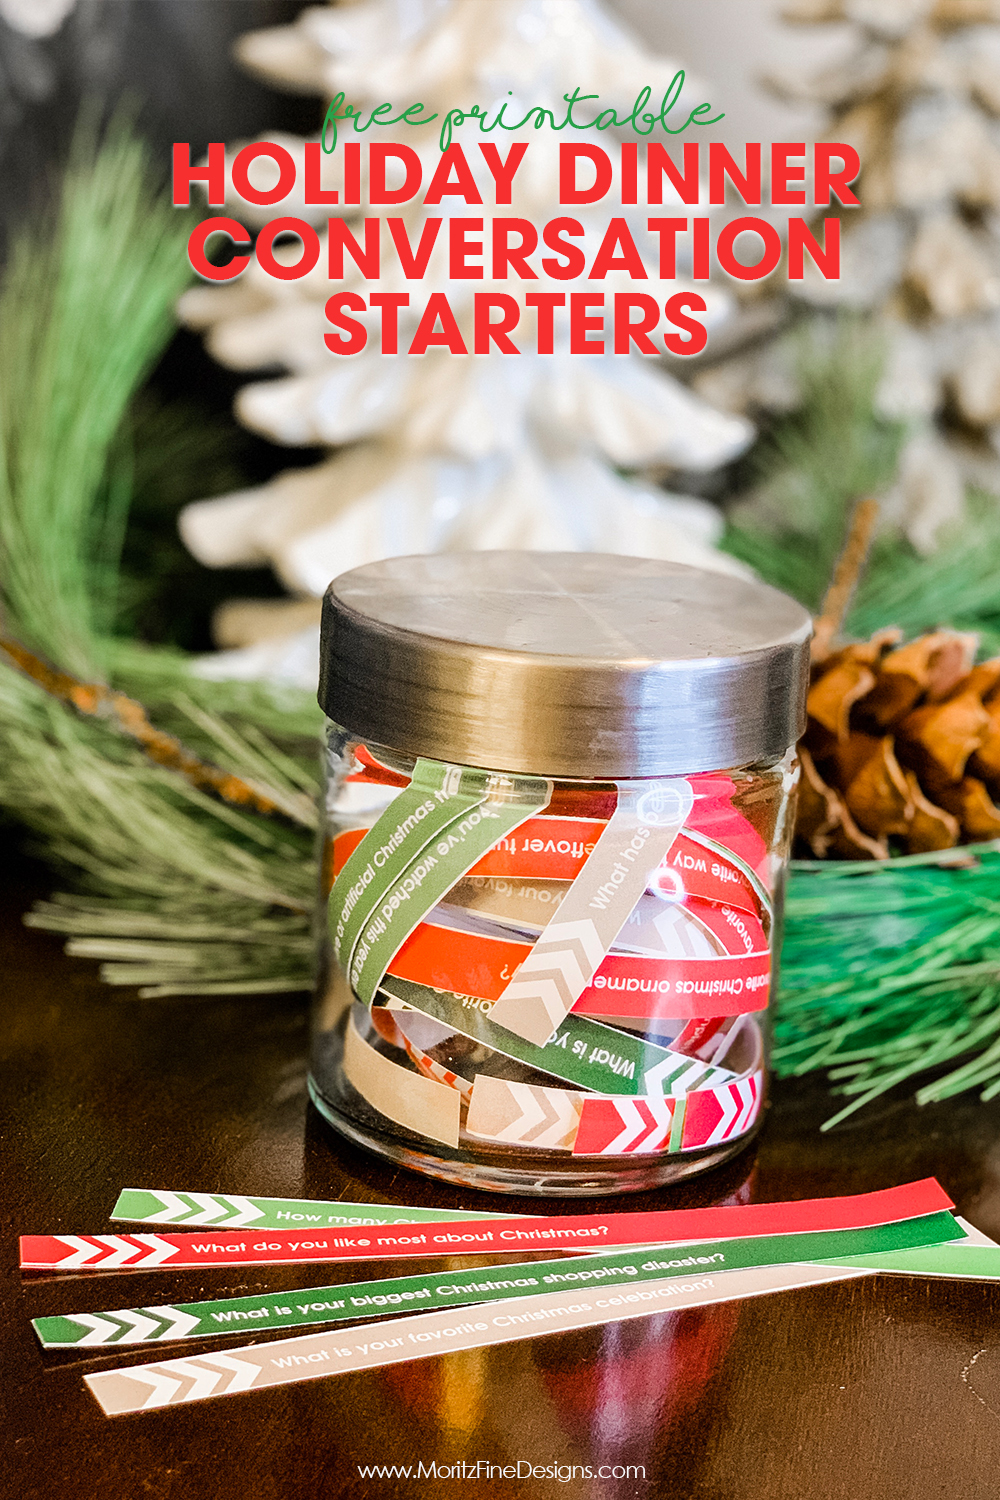 Skip the awkward holiday dinner conversation--use these fun Holiday Dinner Conversation Starters to enable a healthy and fun dinner discussion.